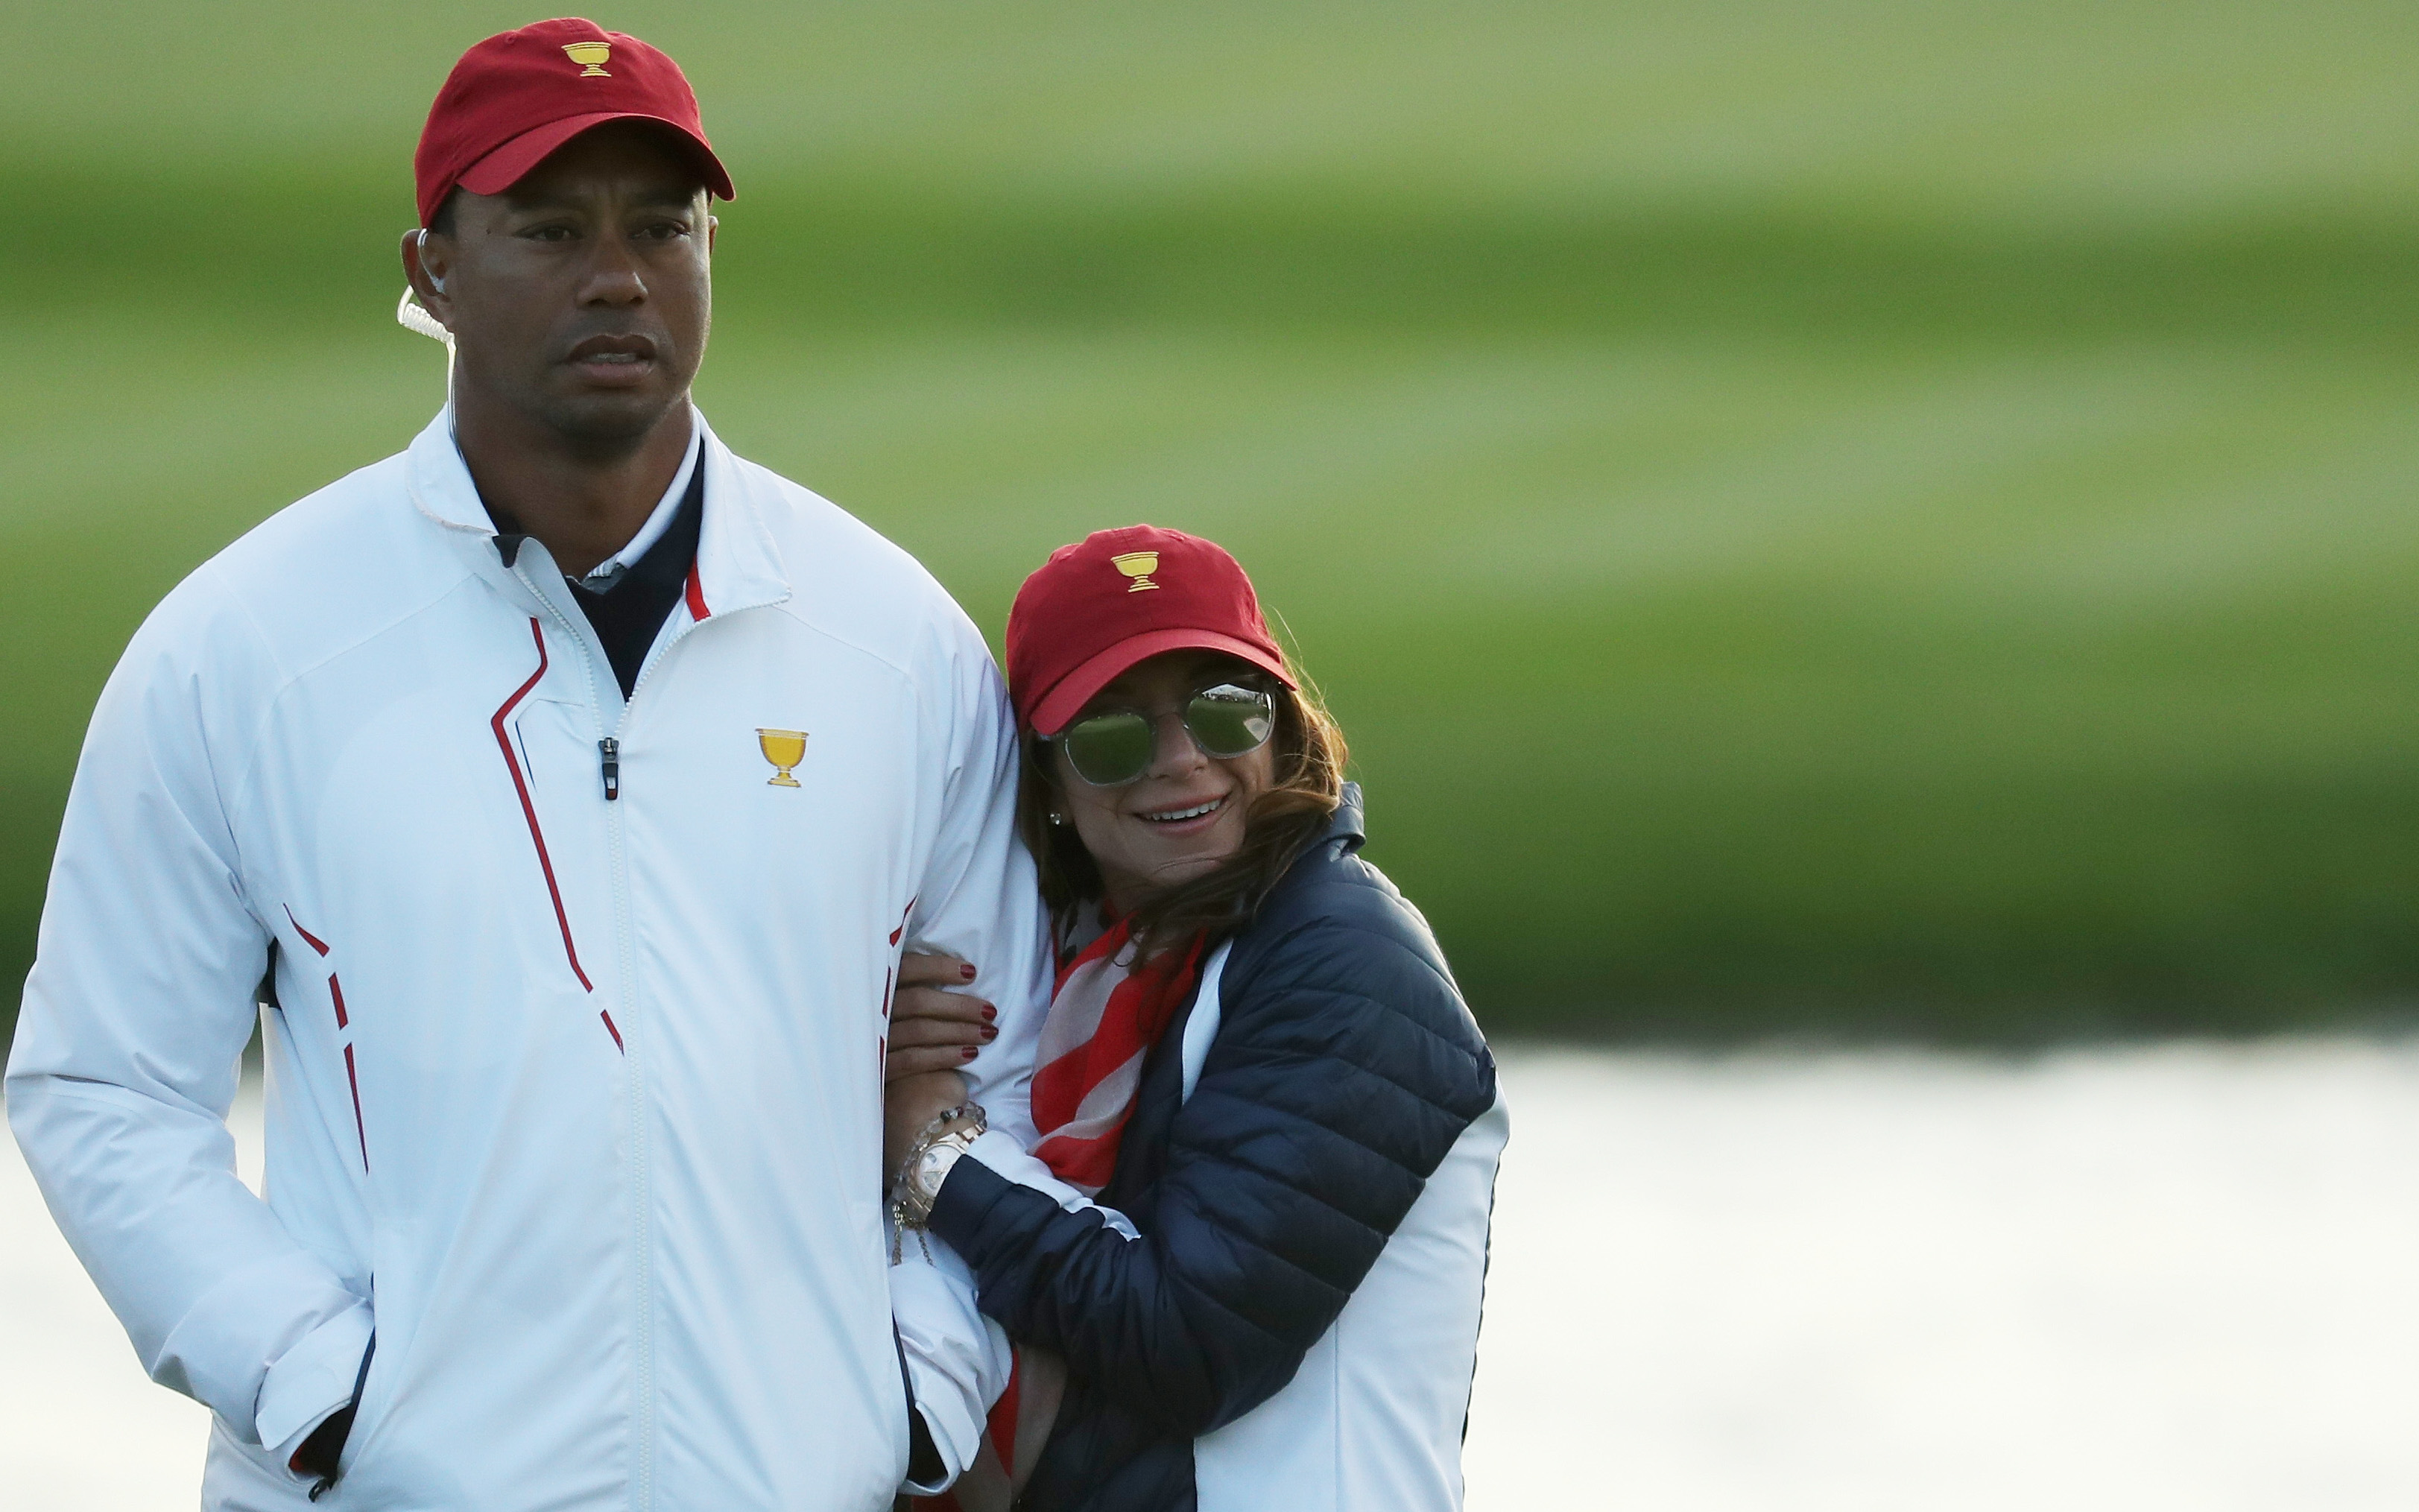 Tiger Woods' Girlfriend: Everything We Know About Erica Herman!